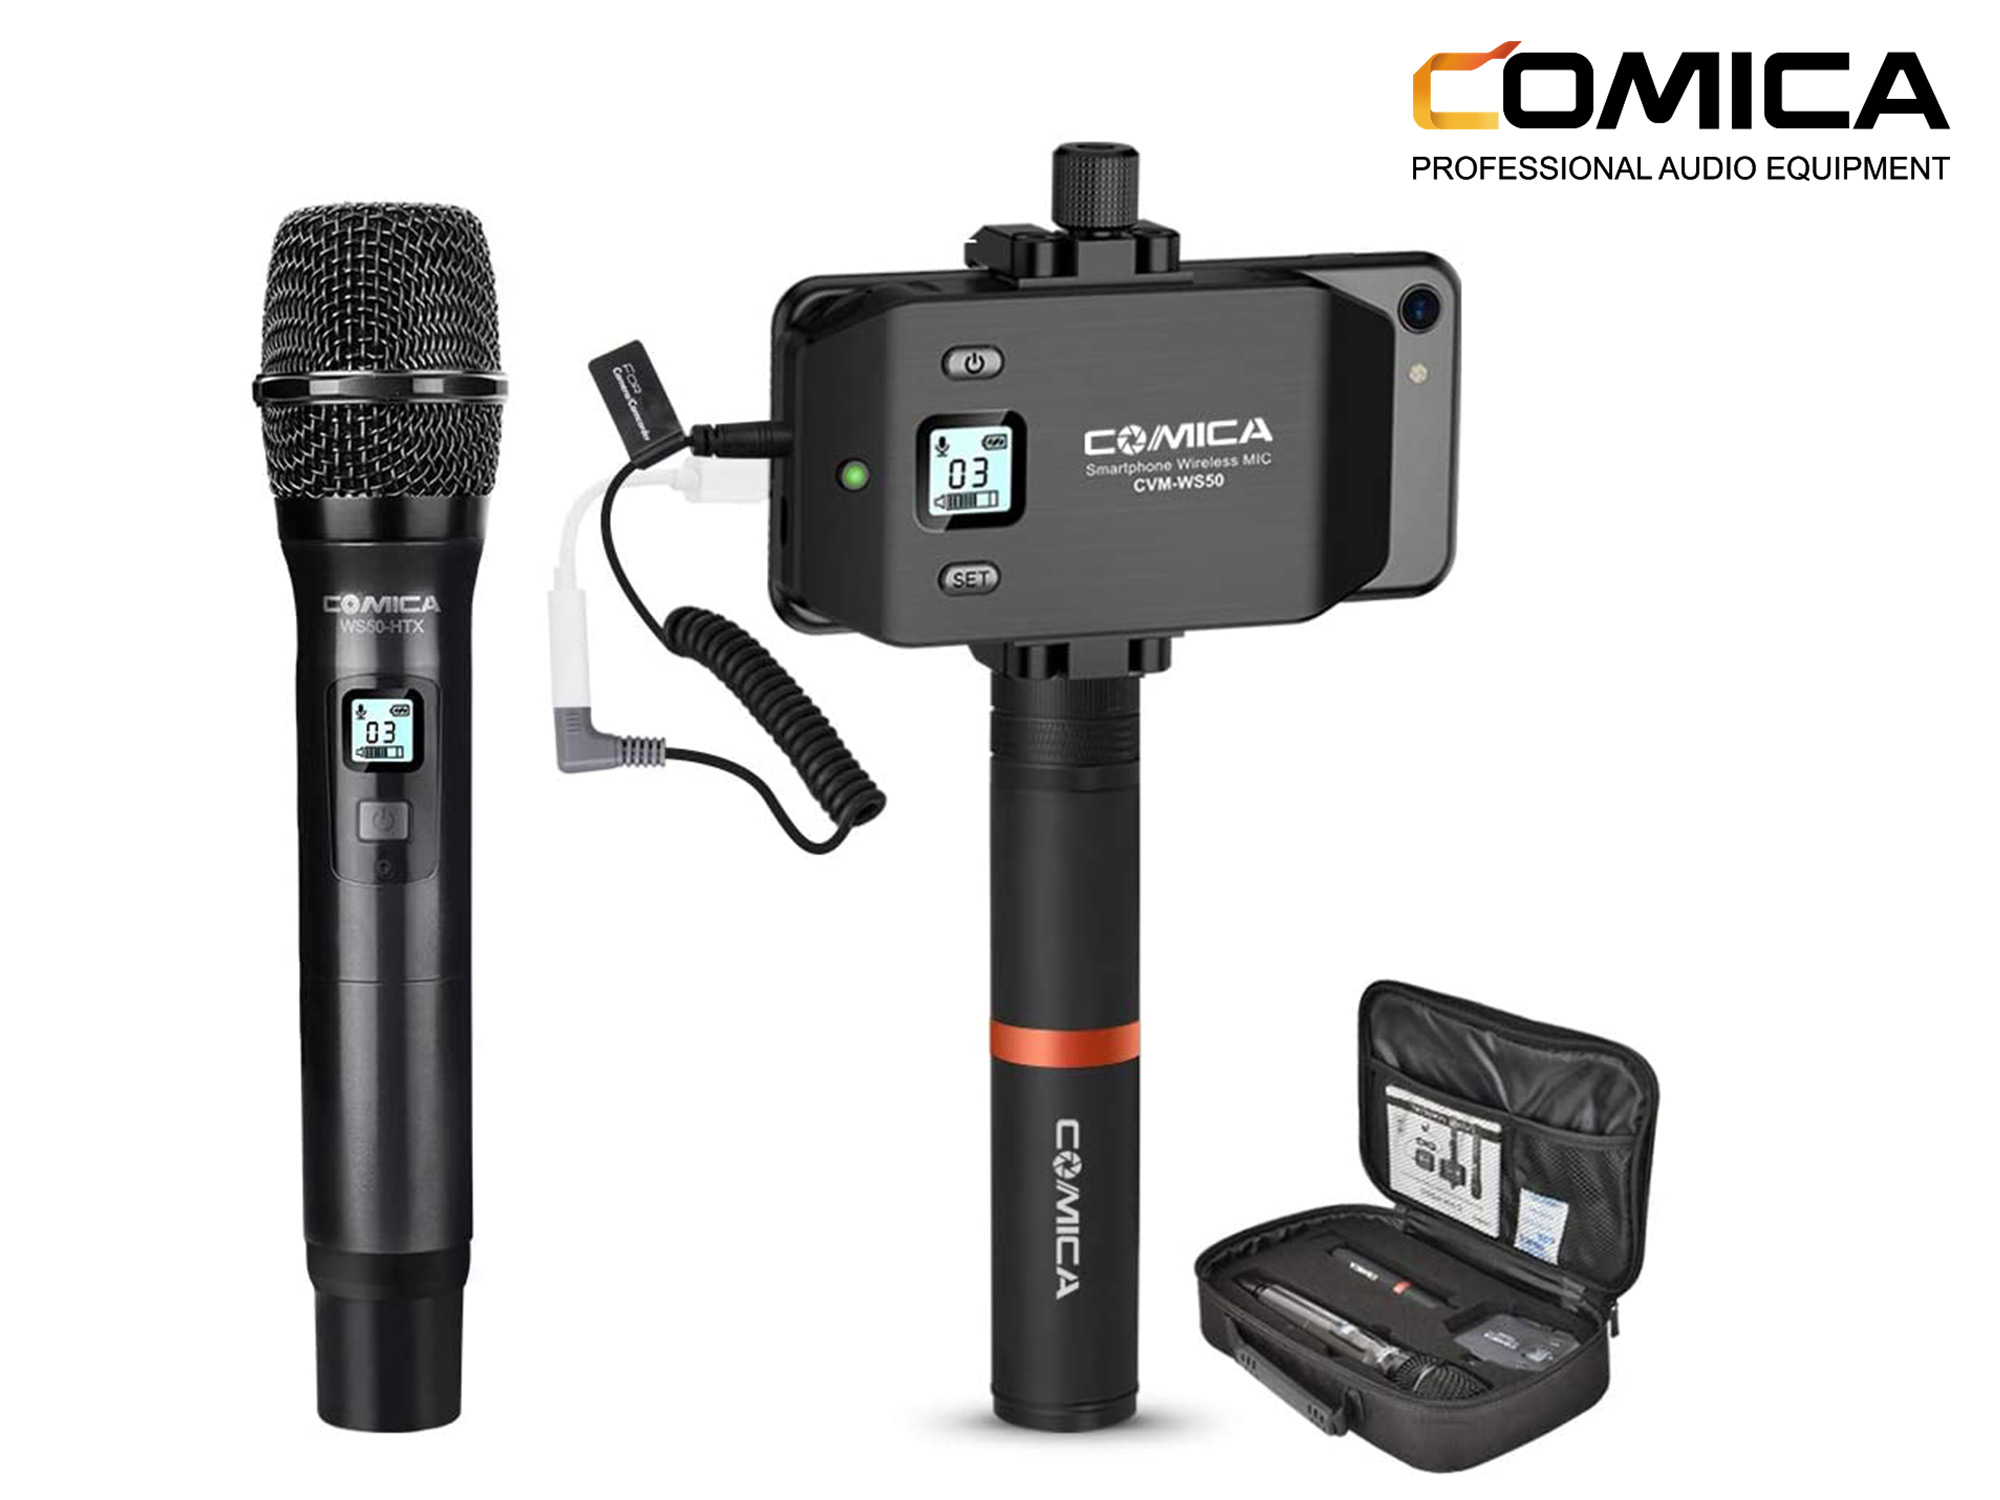 Comica 6 Channels Professional Handheld Microphone